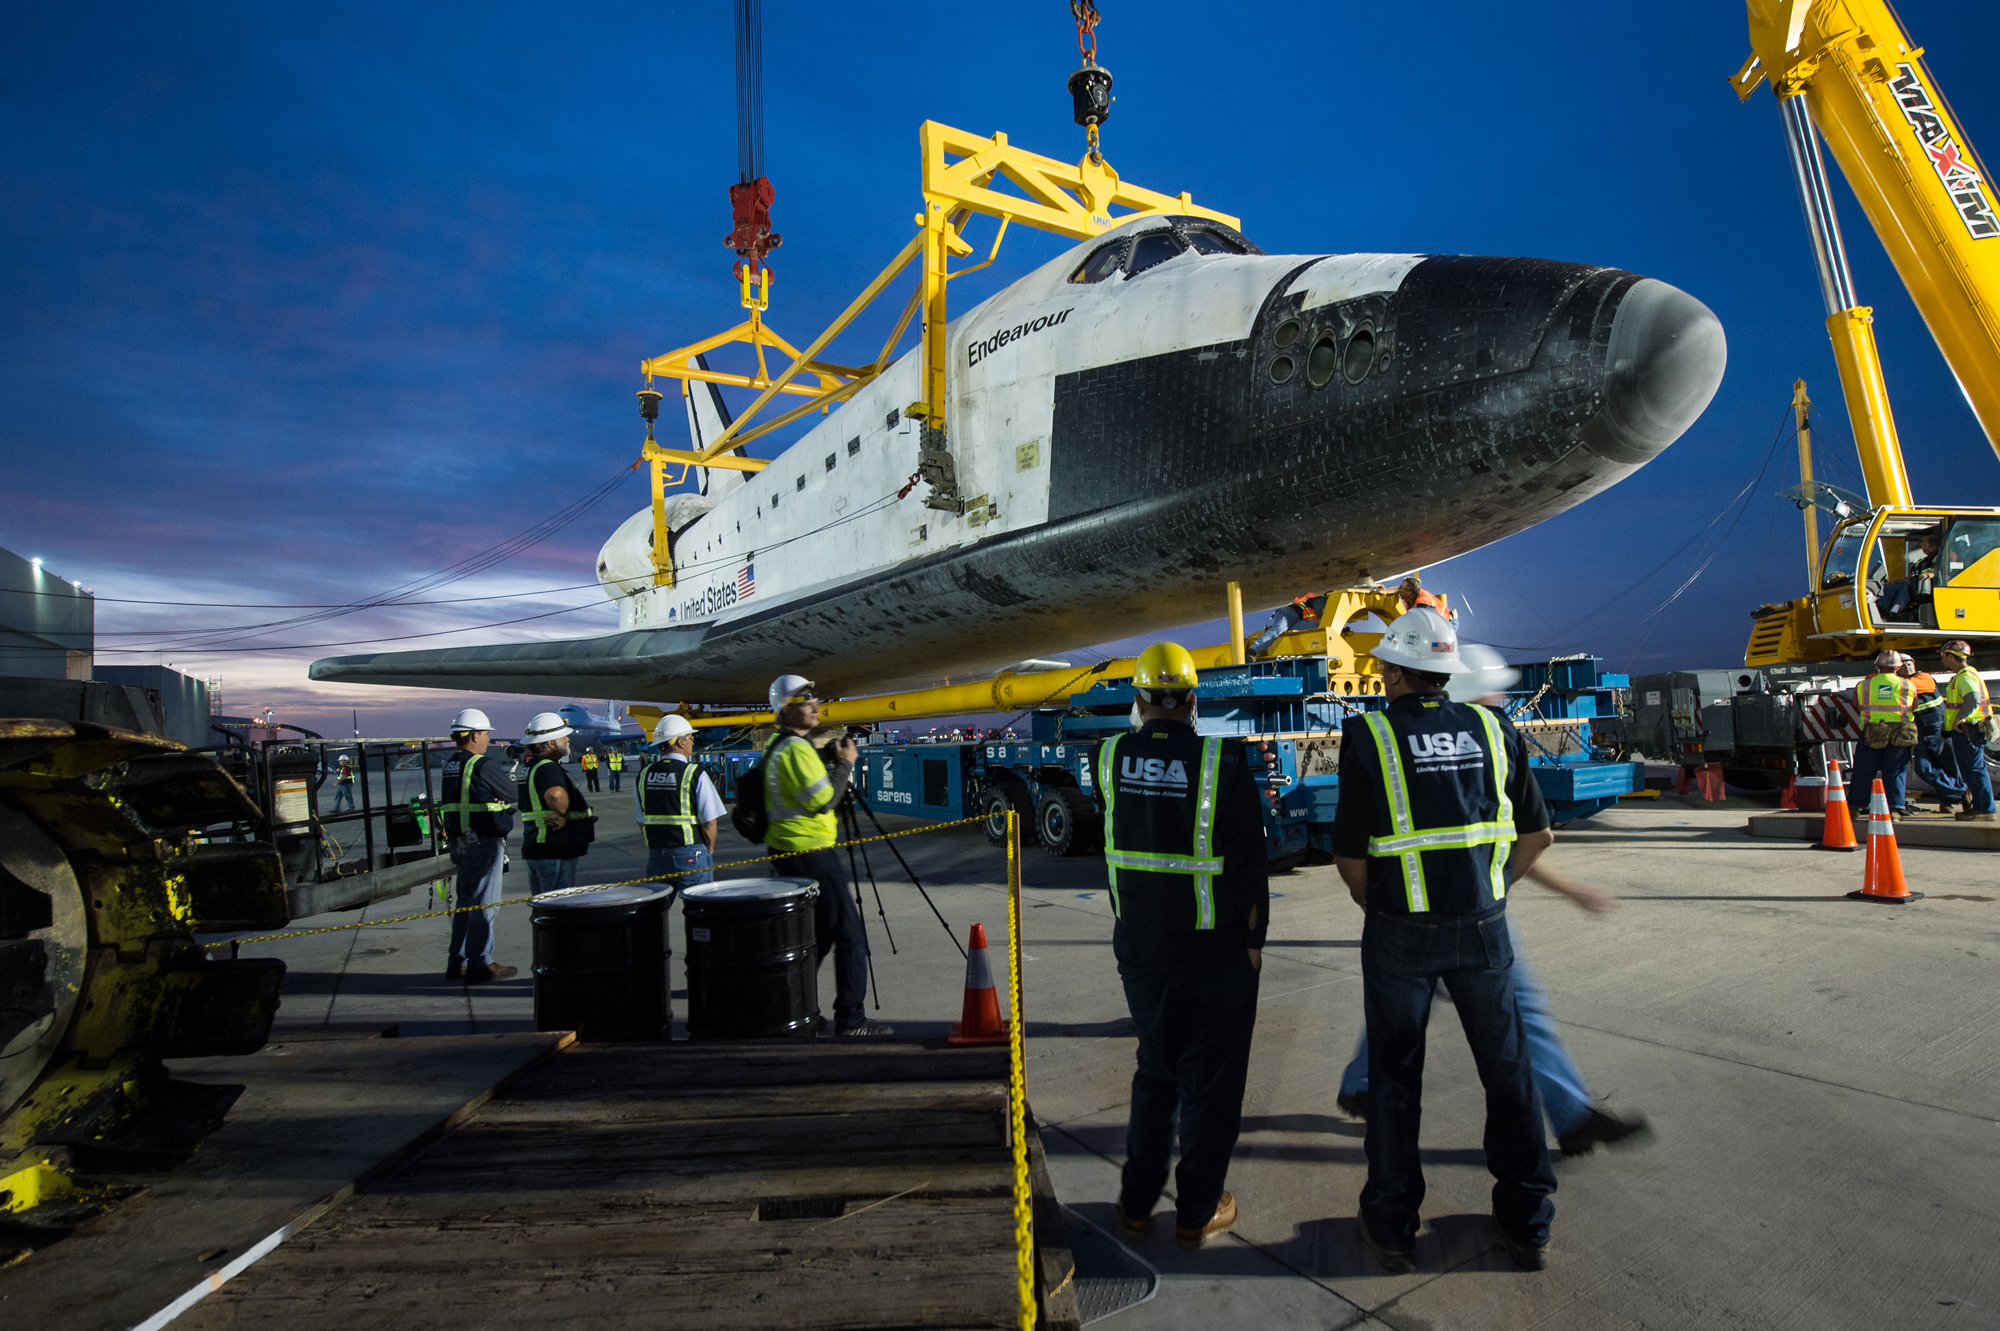 Shuttle Endeavour Hoisted Off Carrier Plane